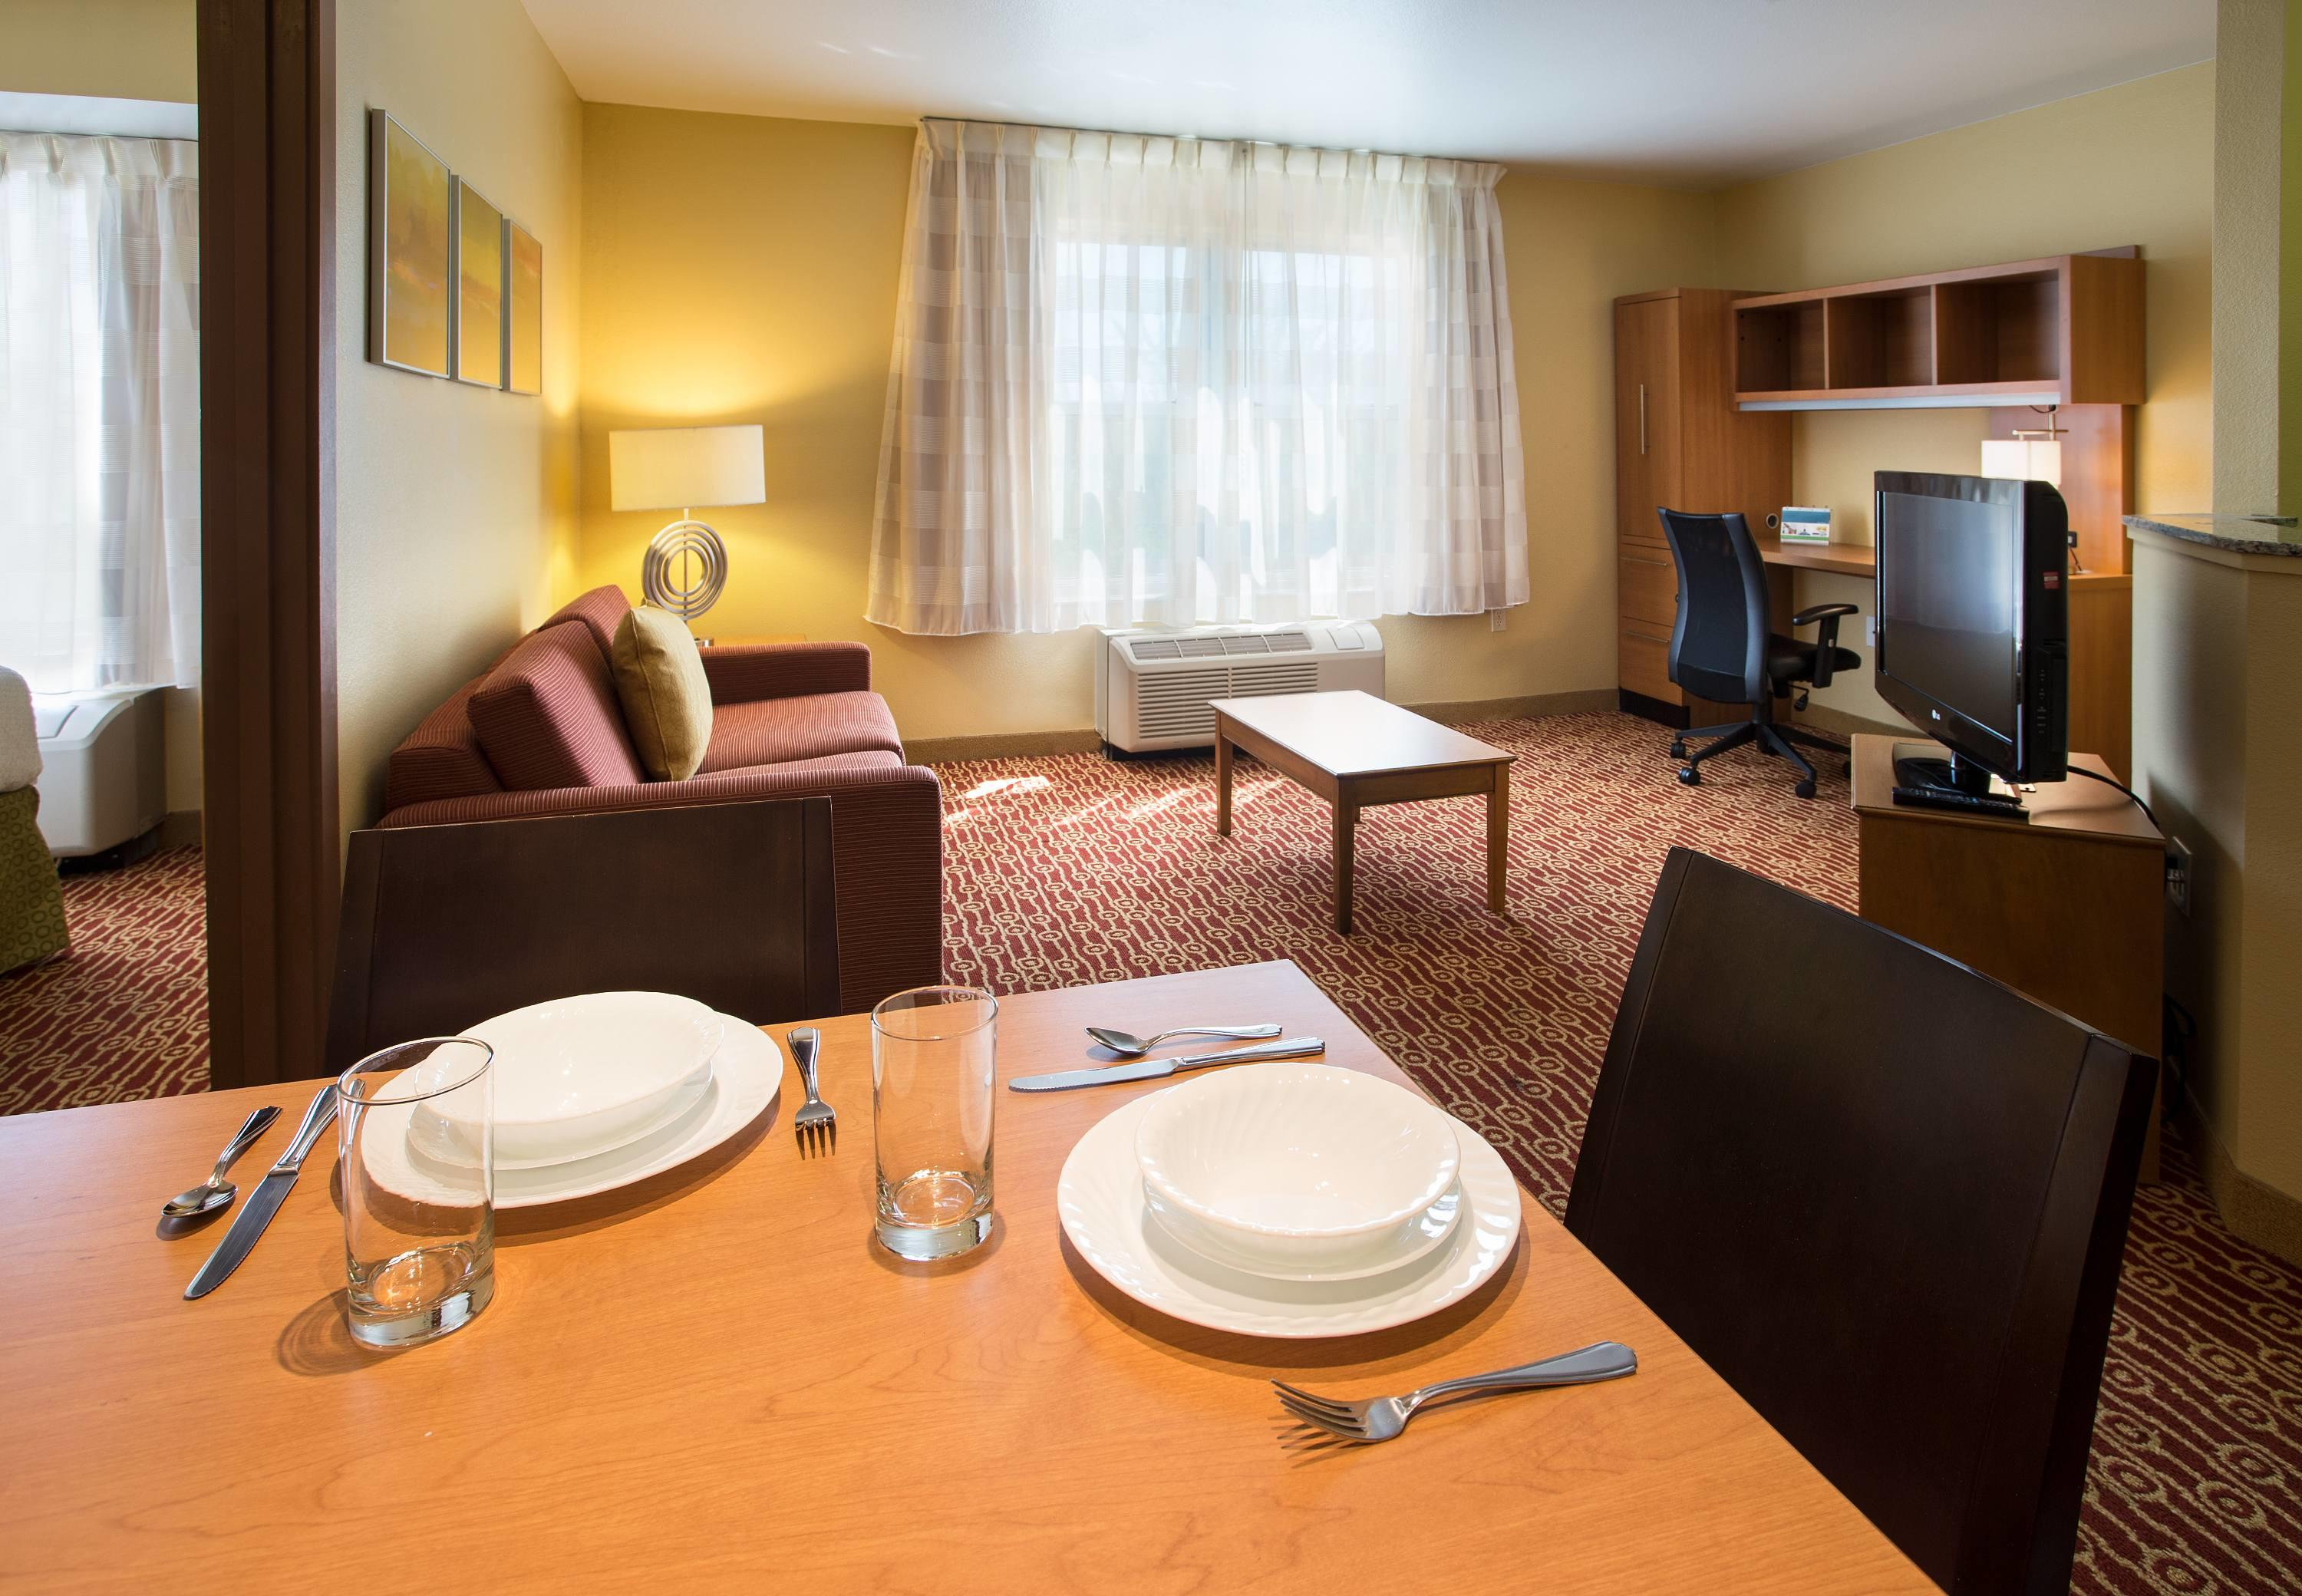 TownePlace Suites by Marriott Scottsdale image 4